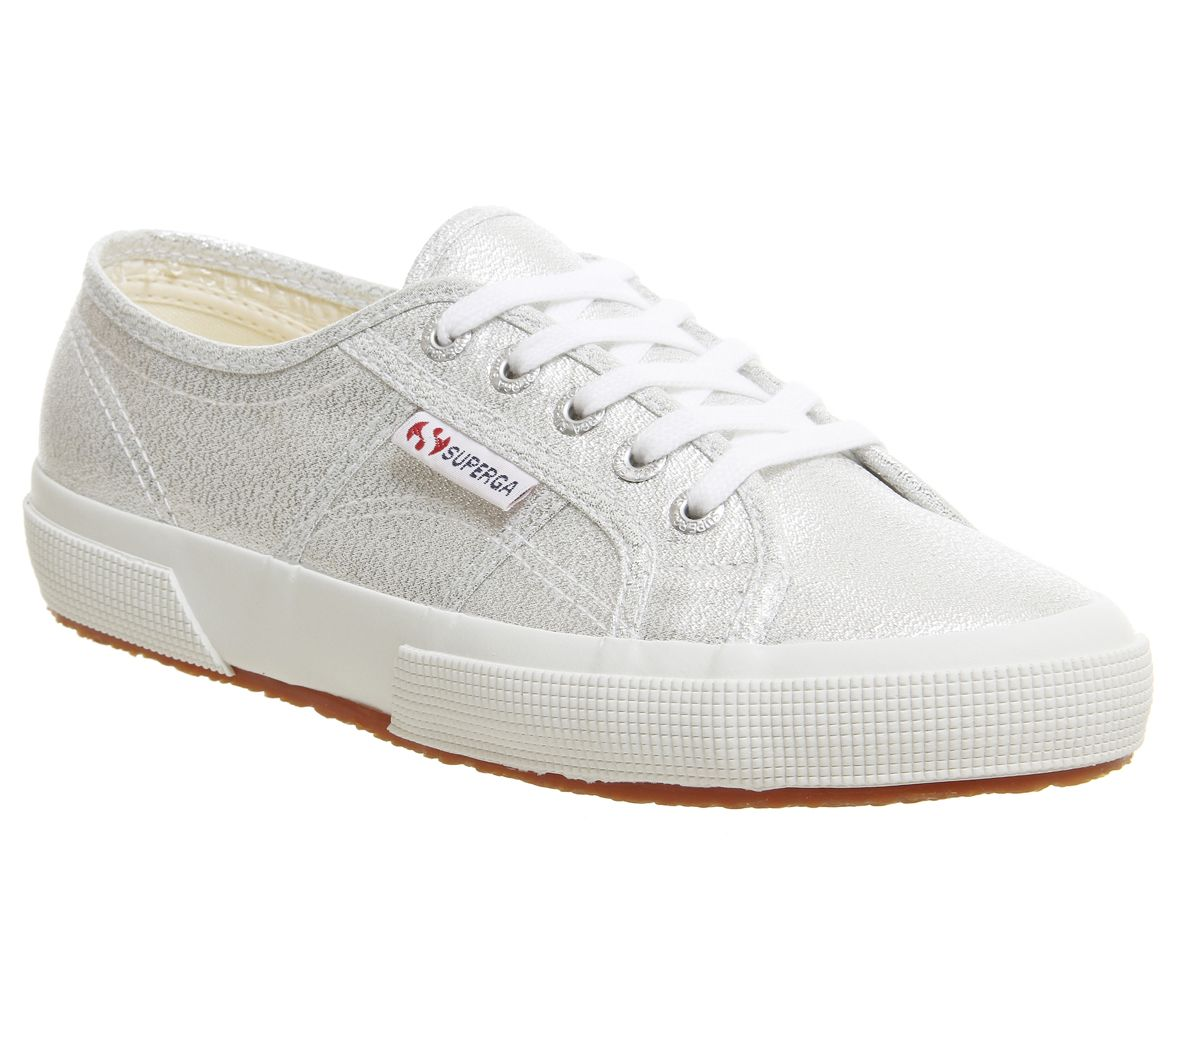 a080a1761e71b5 Sentinel Womens Superga 2750 Trainers Grey Silver Trainers Shoes